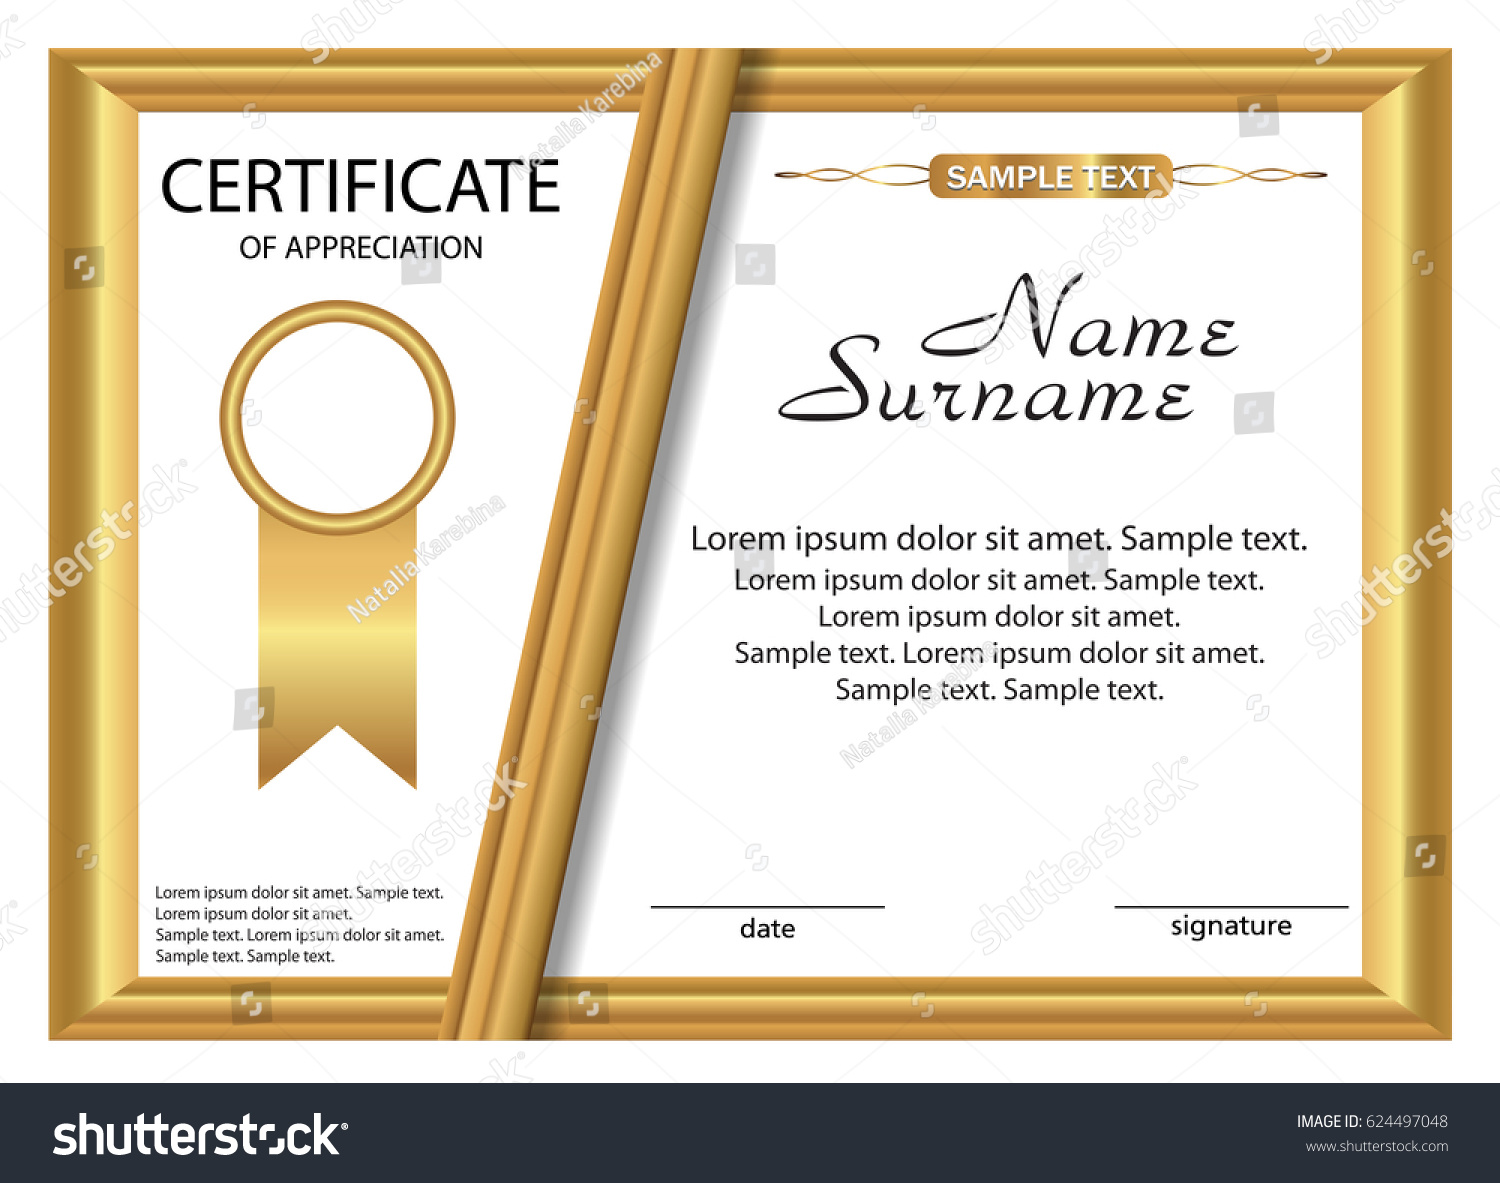 Certificate of appreciation examples manufacturing resume sample sample wording for certificate of appreciation free newsletter stock vector template certificate of appreciation gold design yadclub Choice Image